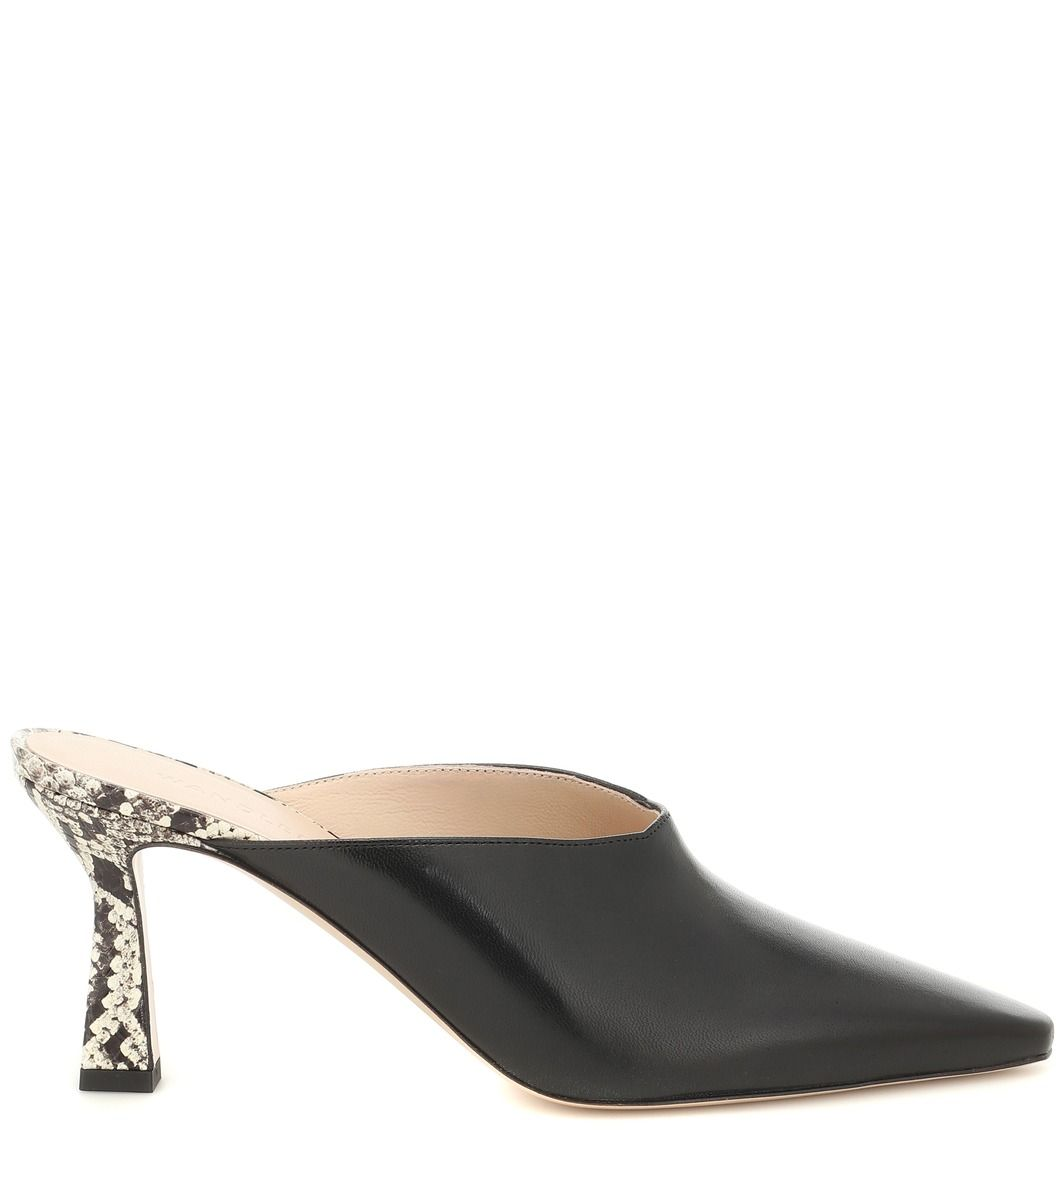 Exclusive To Mytheresa Lotte Leather Mules Leather Mules Patent Leather Pumps Low Wedge Espadrilles